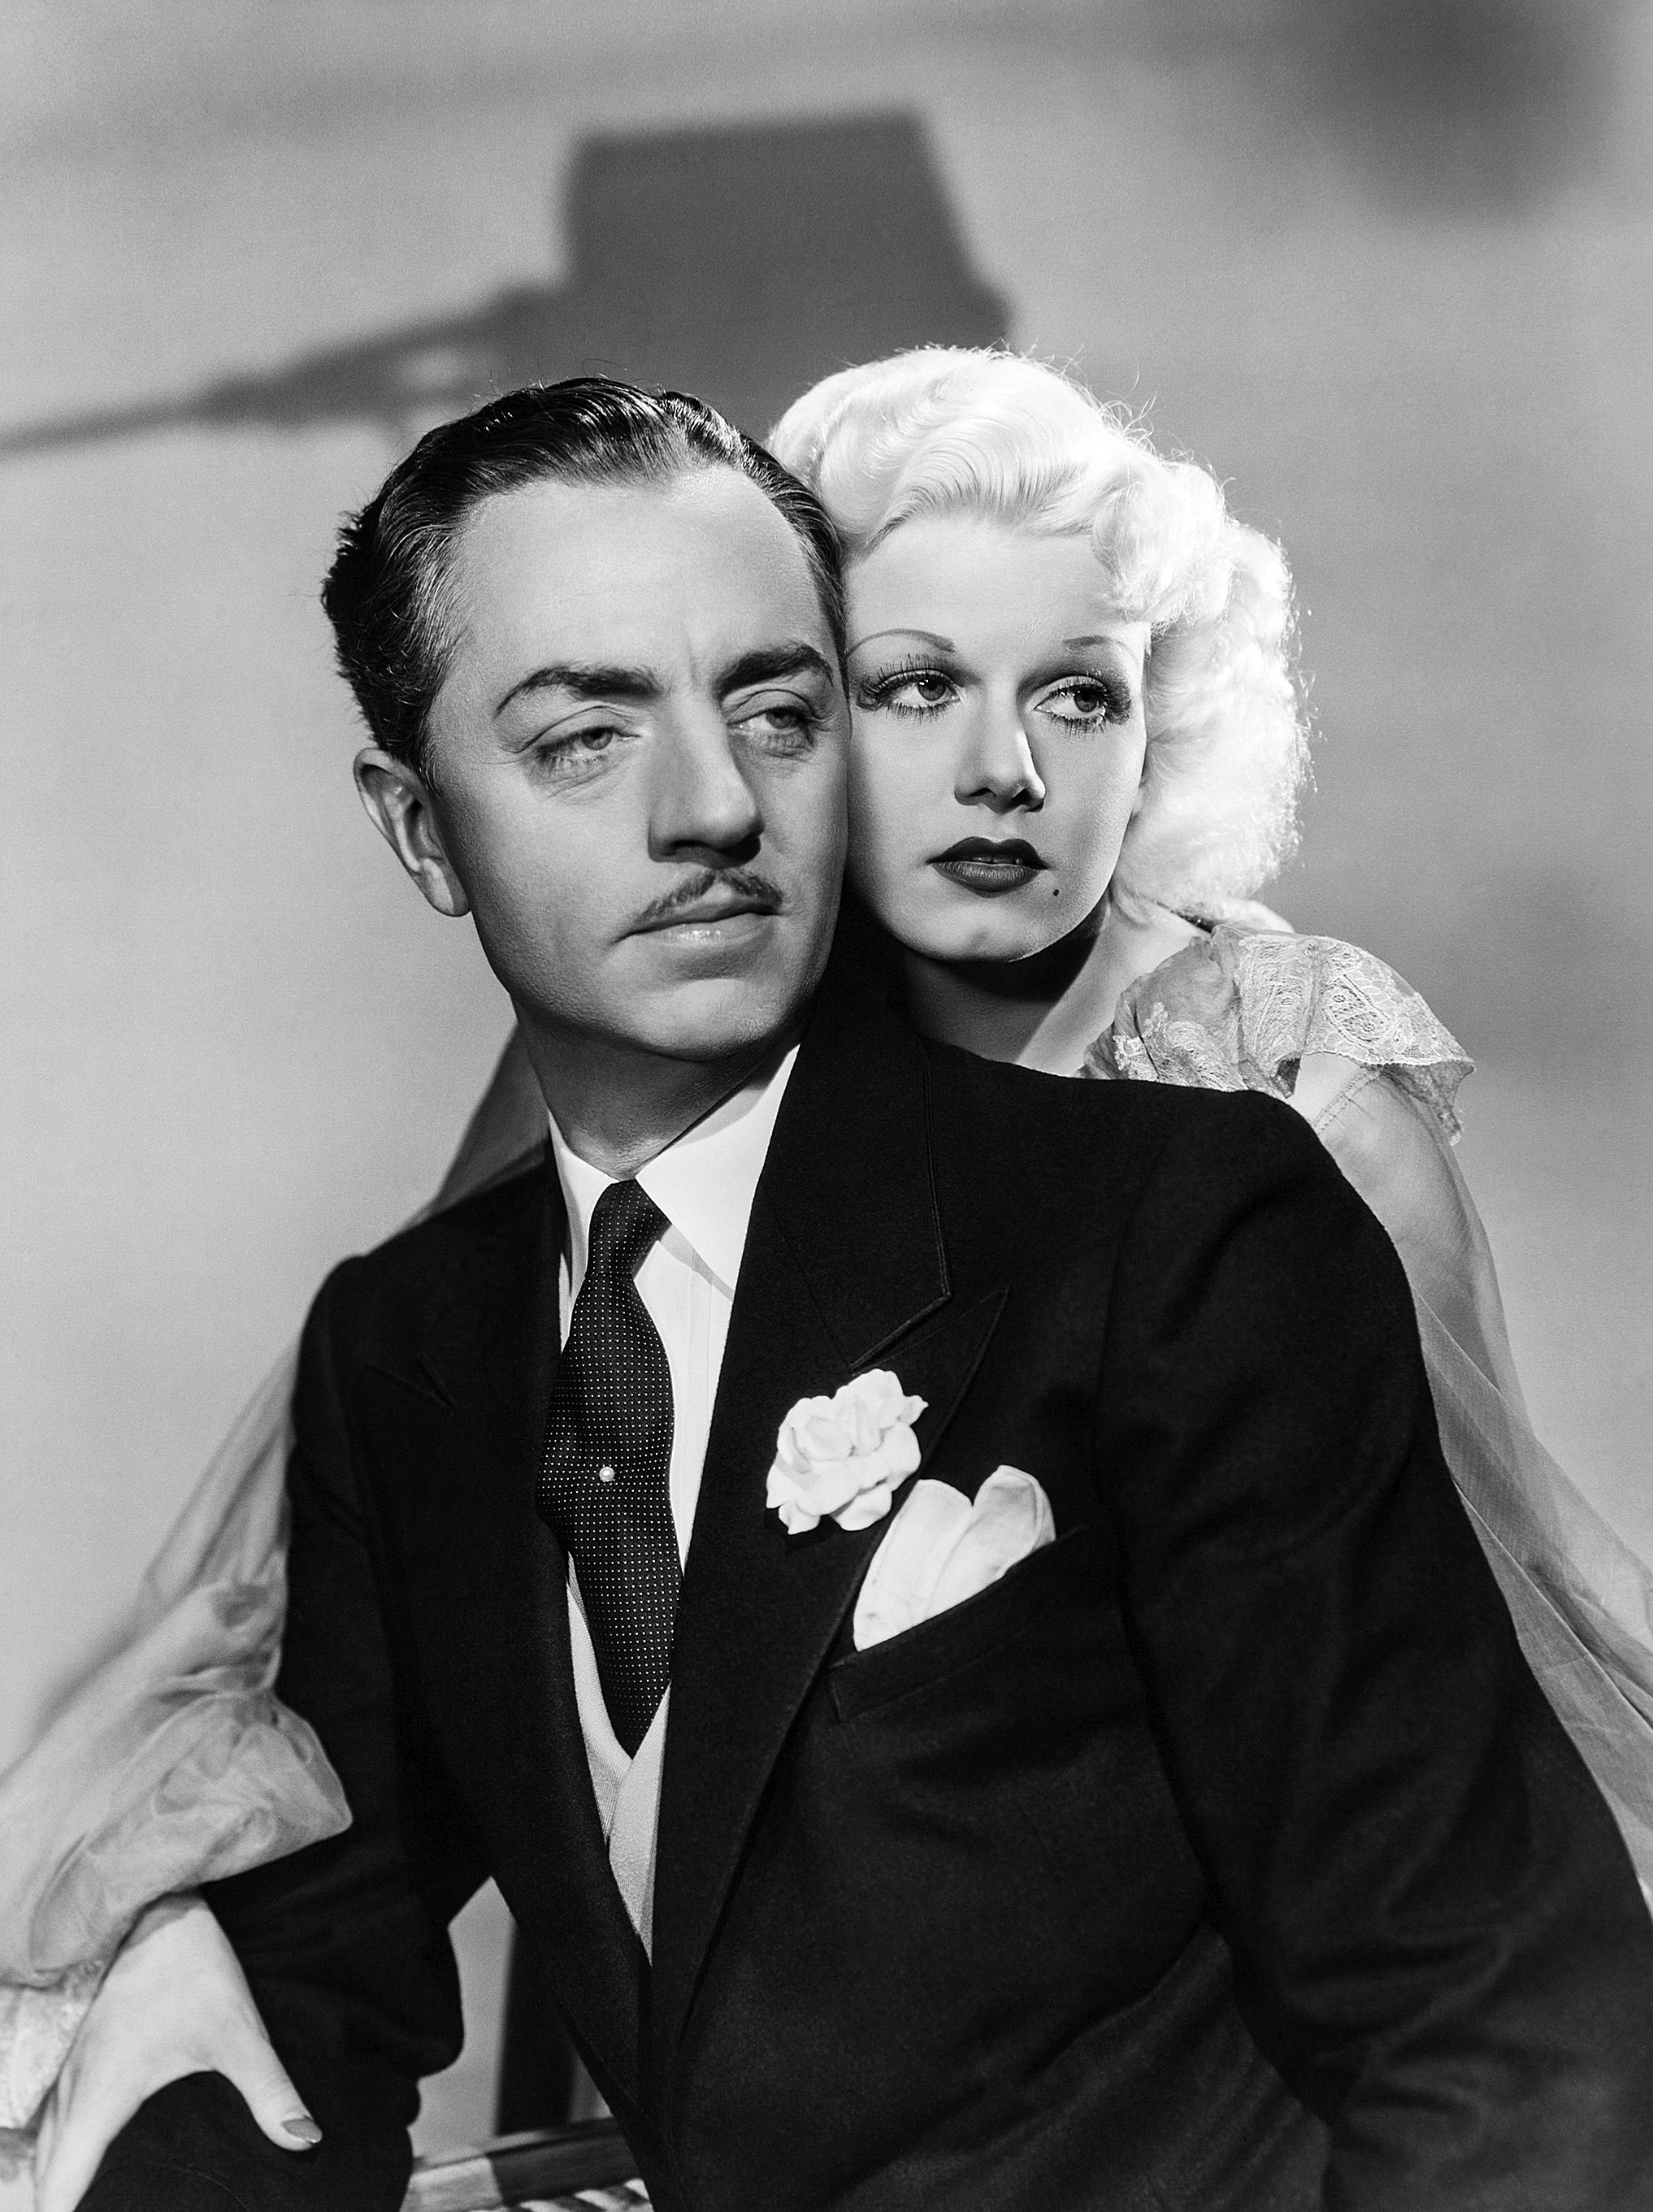 Jean Harlow in Reckless With William Powell